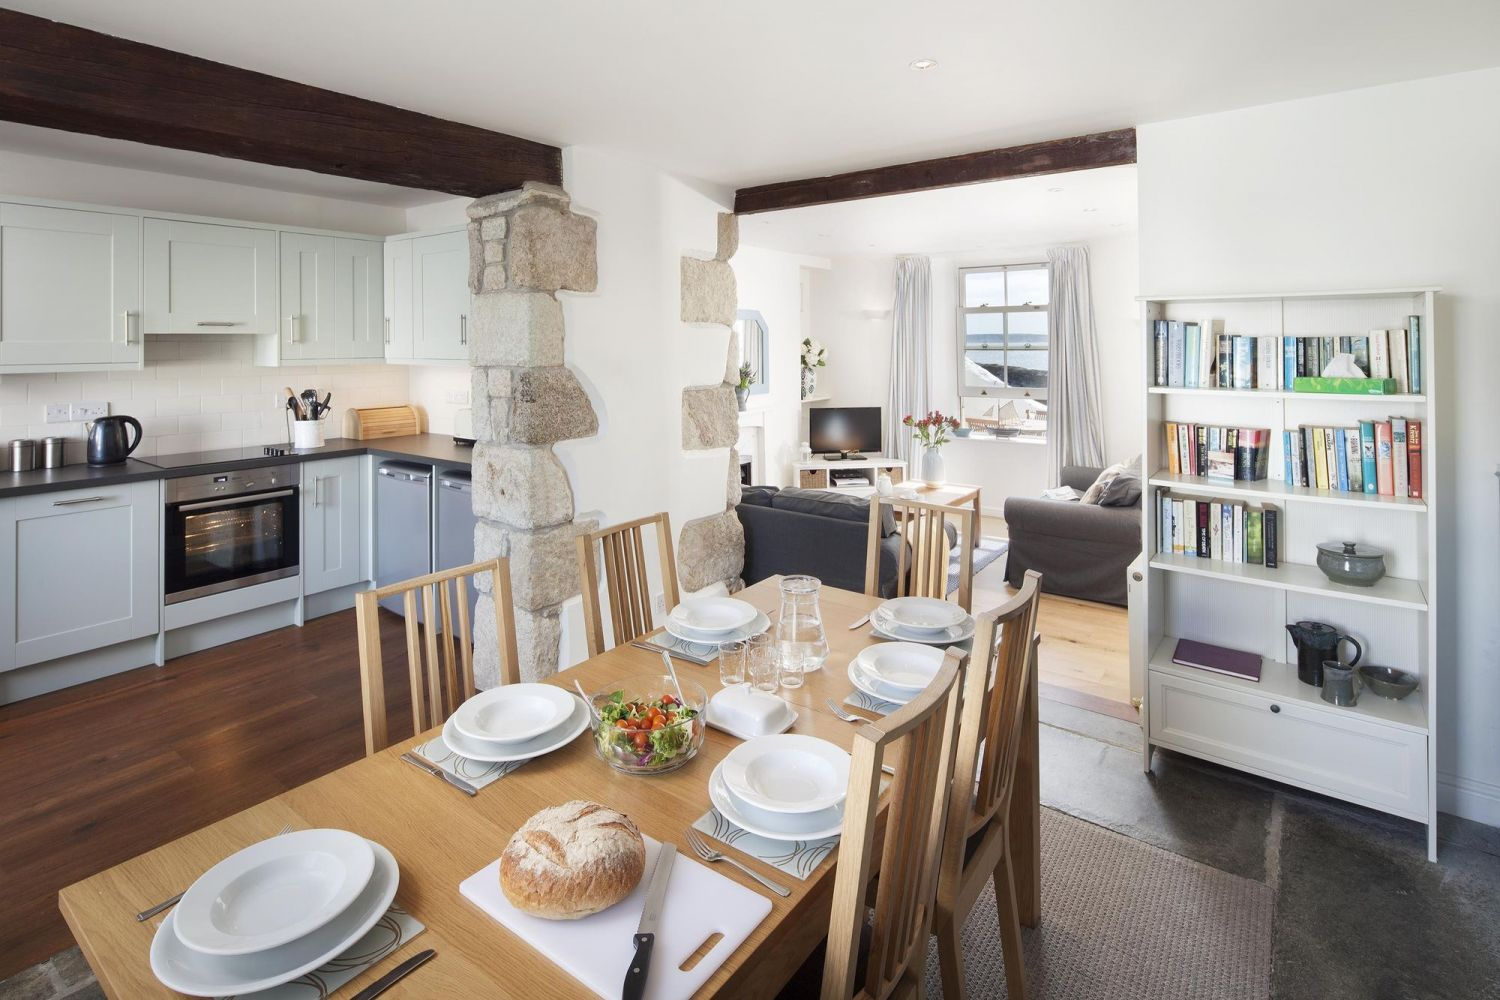 Beach Cottage - Porthleven Holiday Cottages